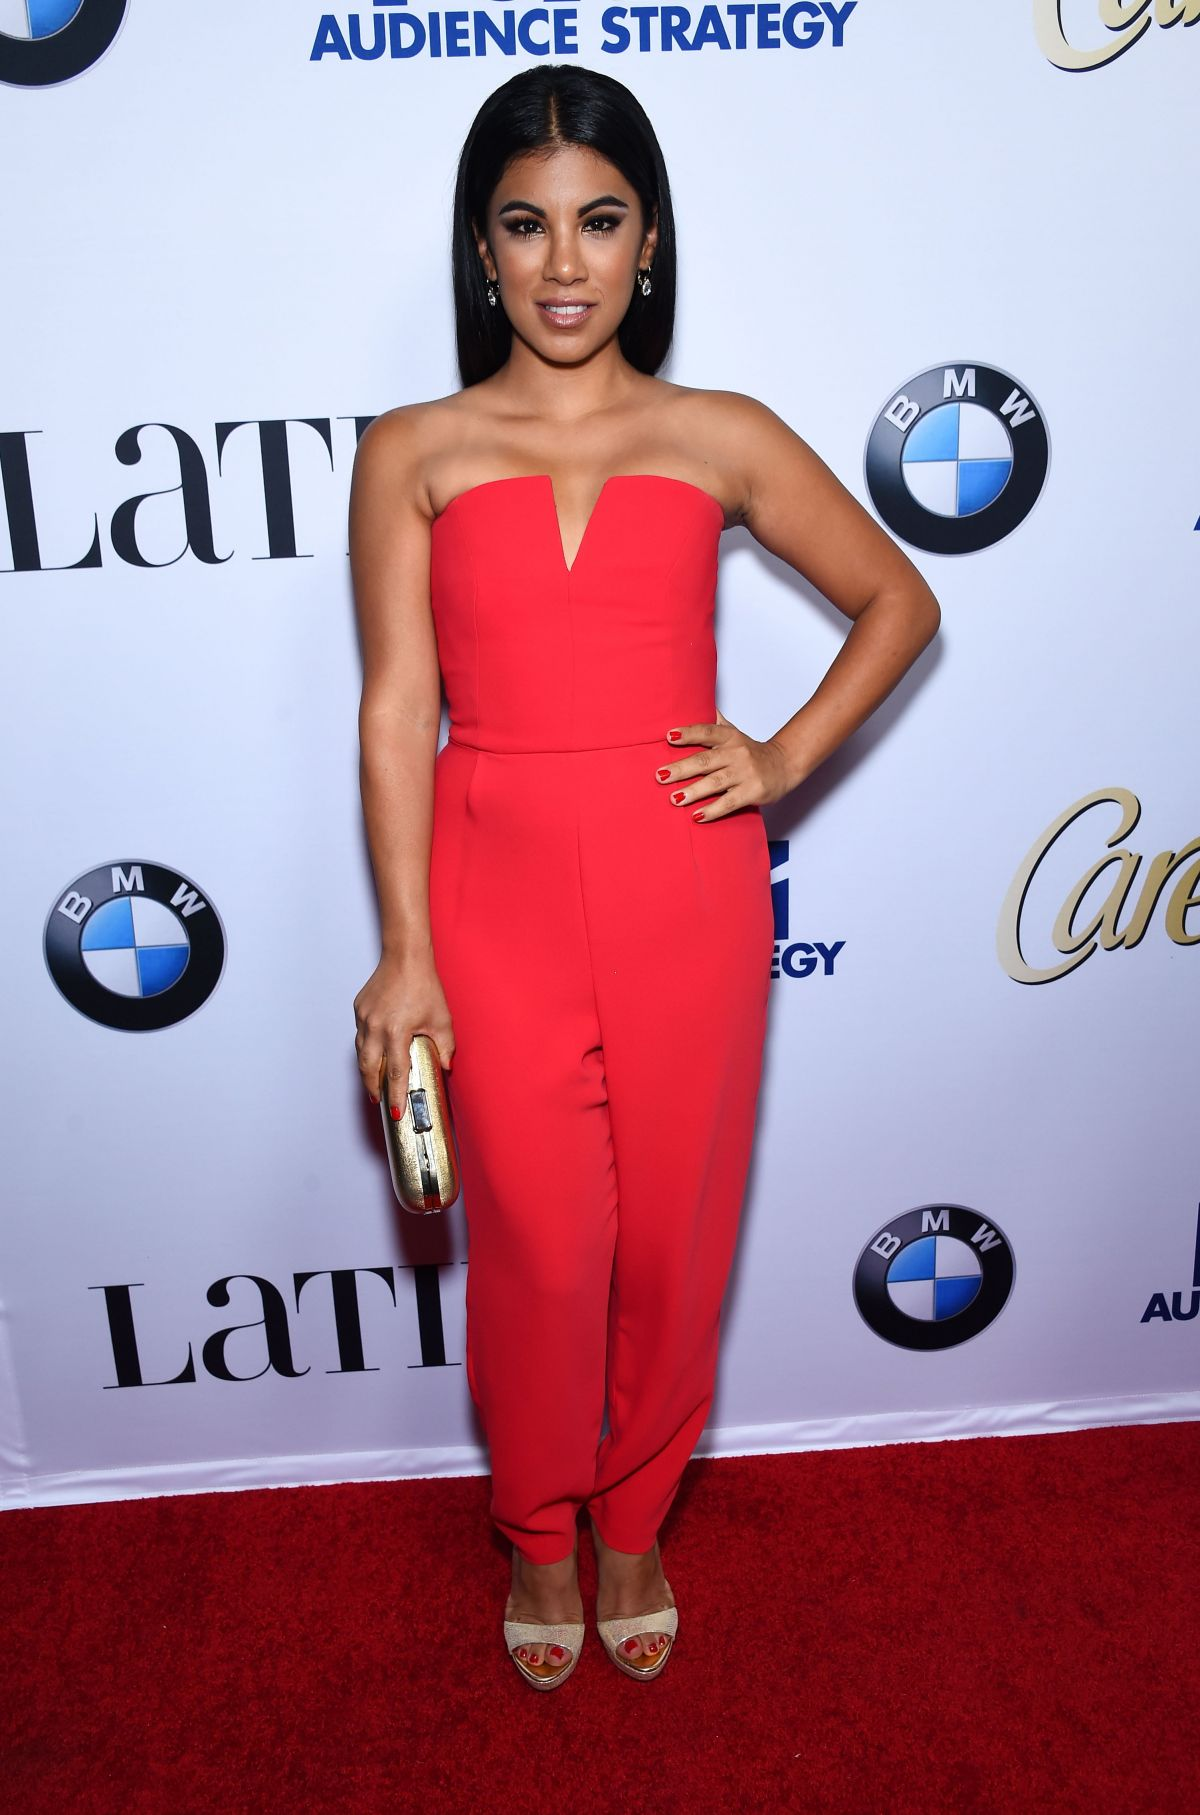 CHRISSIE FIT at Latina Hot List Party in West Hollywood 10/06/2015